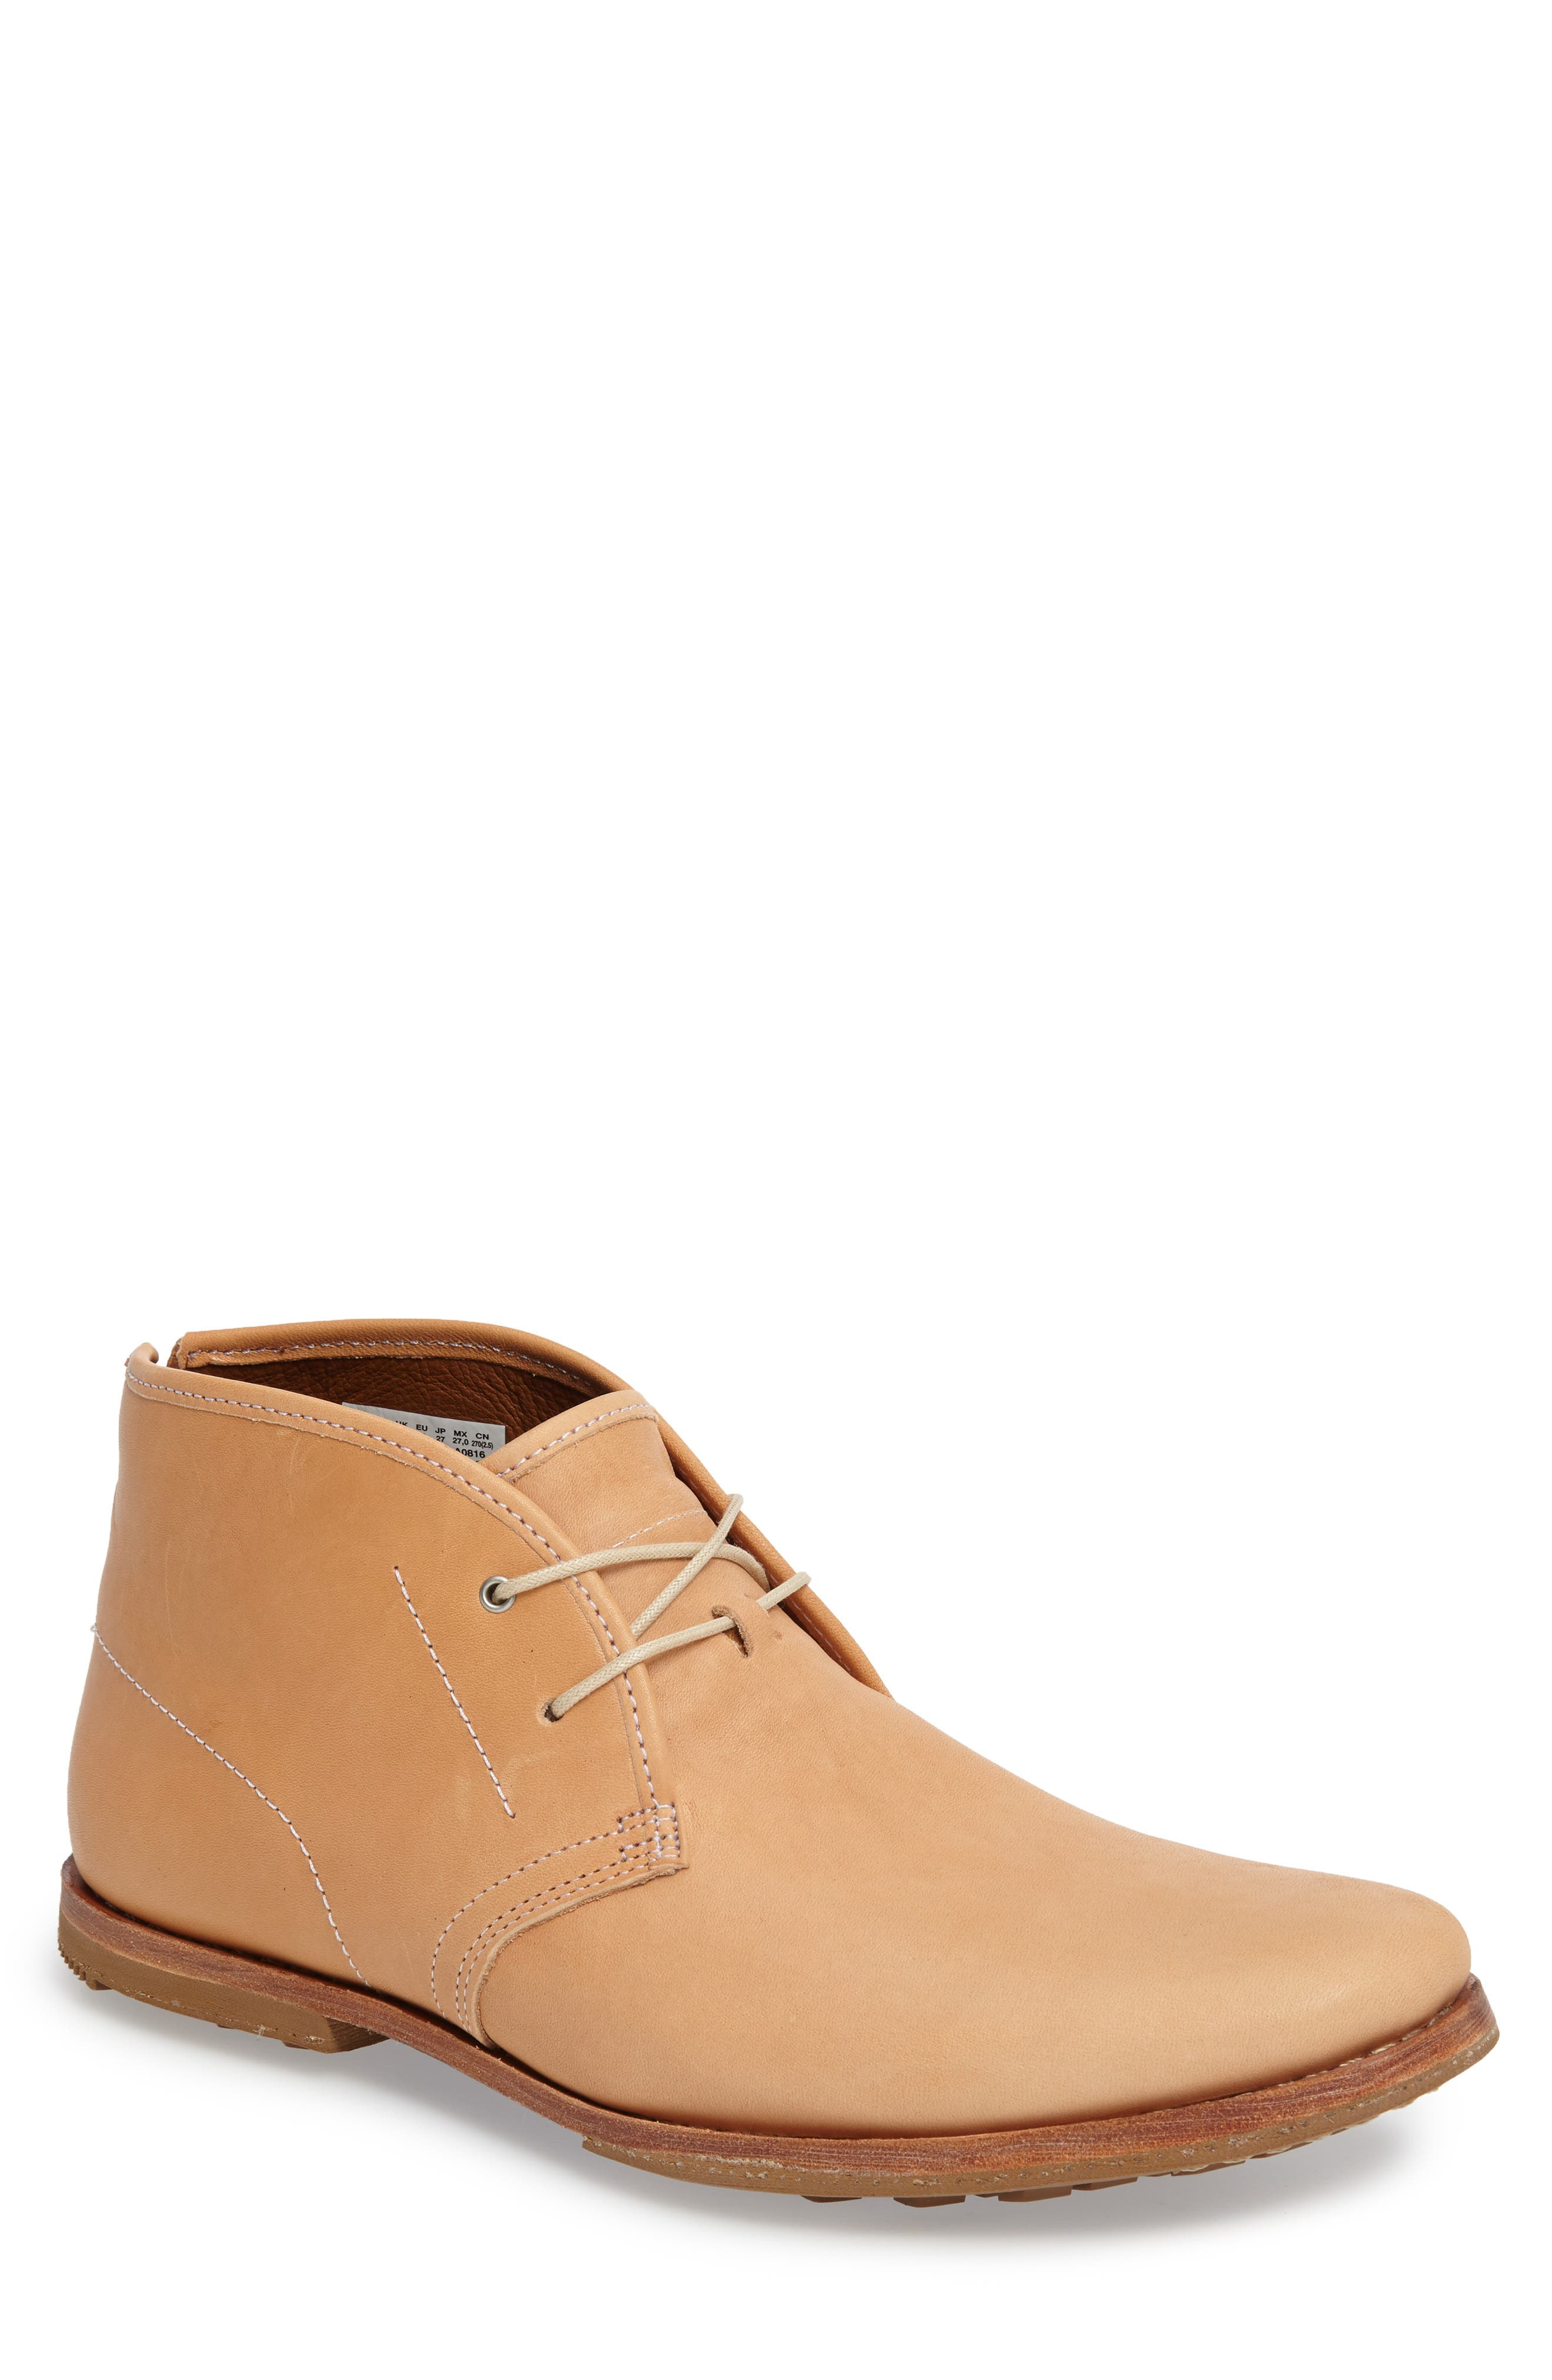 Alternate Image 1 Selected - Timberland Wodehouse Lost History Boot (Men)